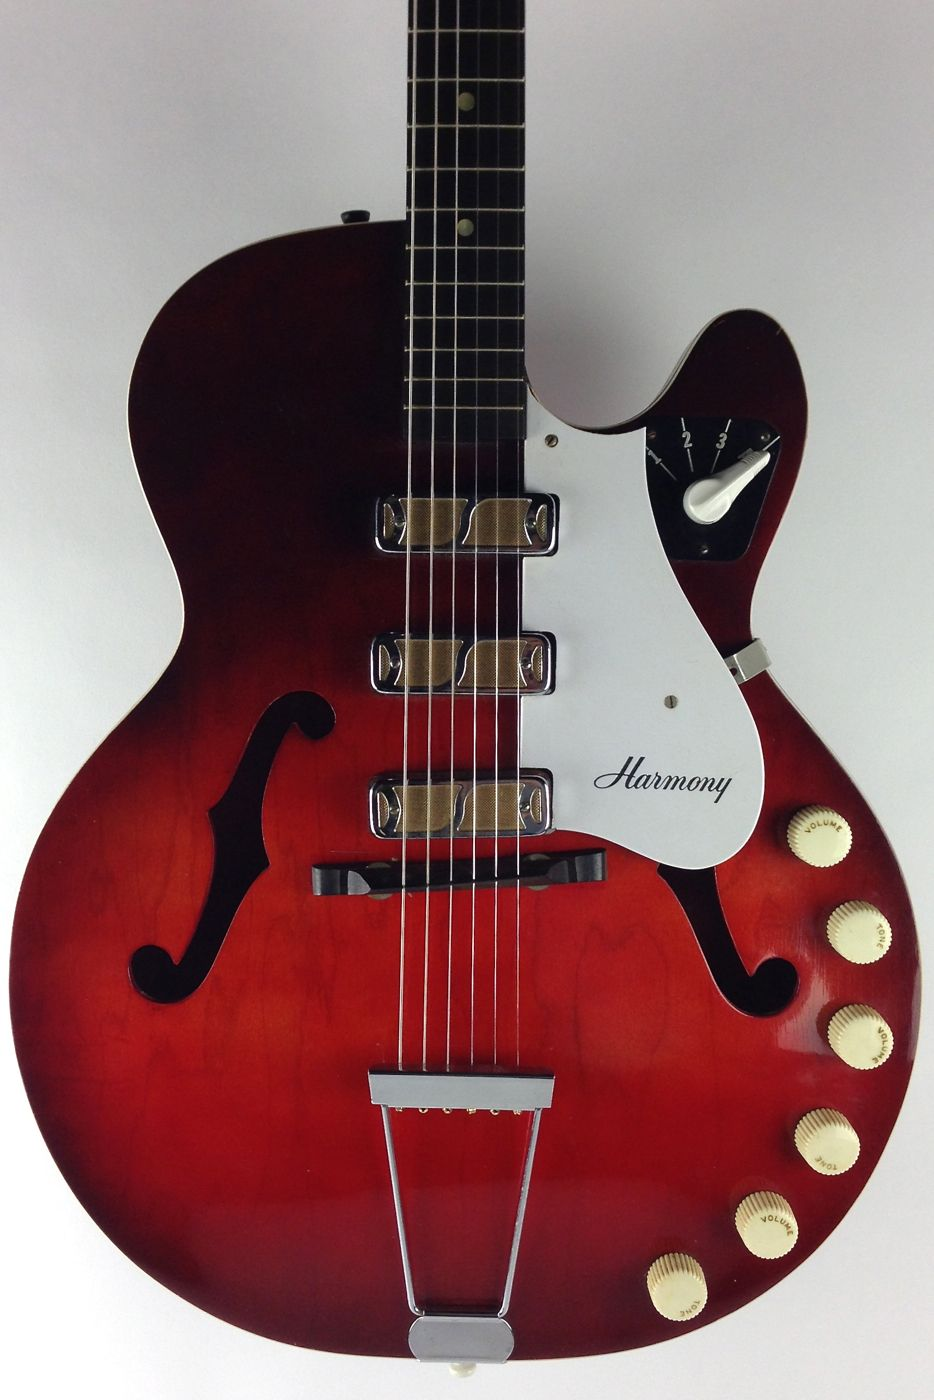 60 s harmony rocket thunder road guitars so many knobs it must be awesome with that many. Black Bedroom Furniture Sets. Home Design Ideas